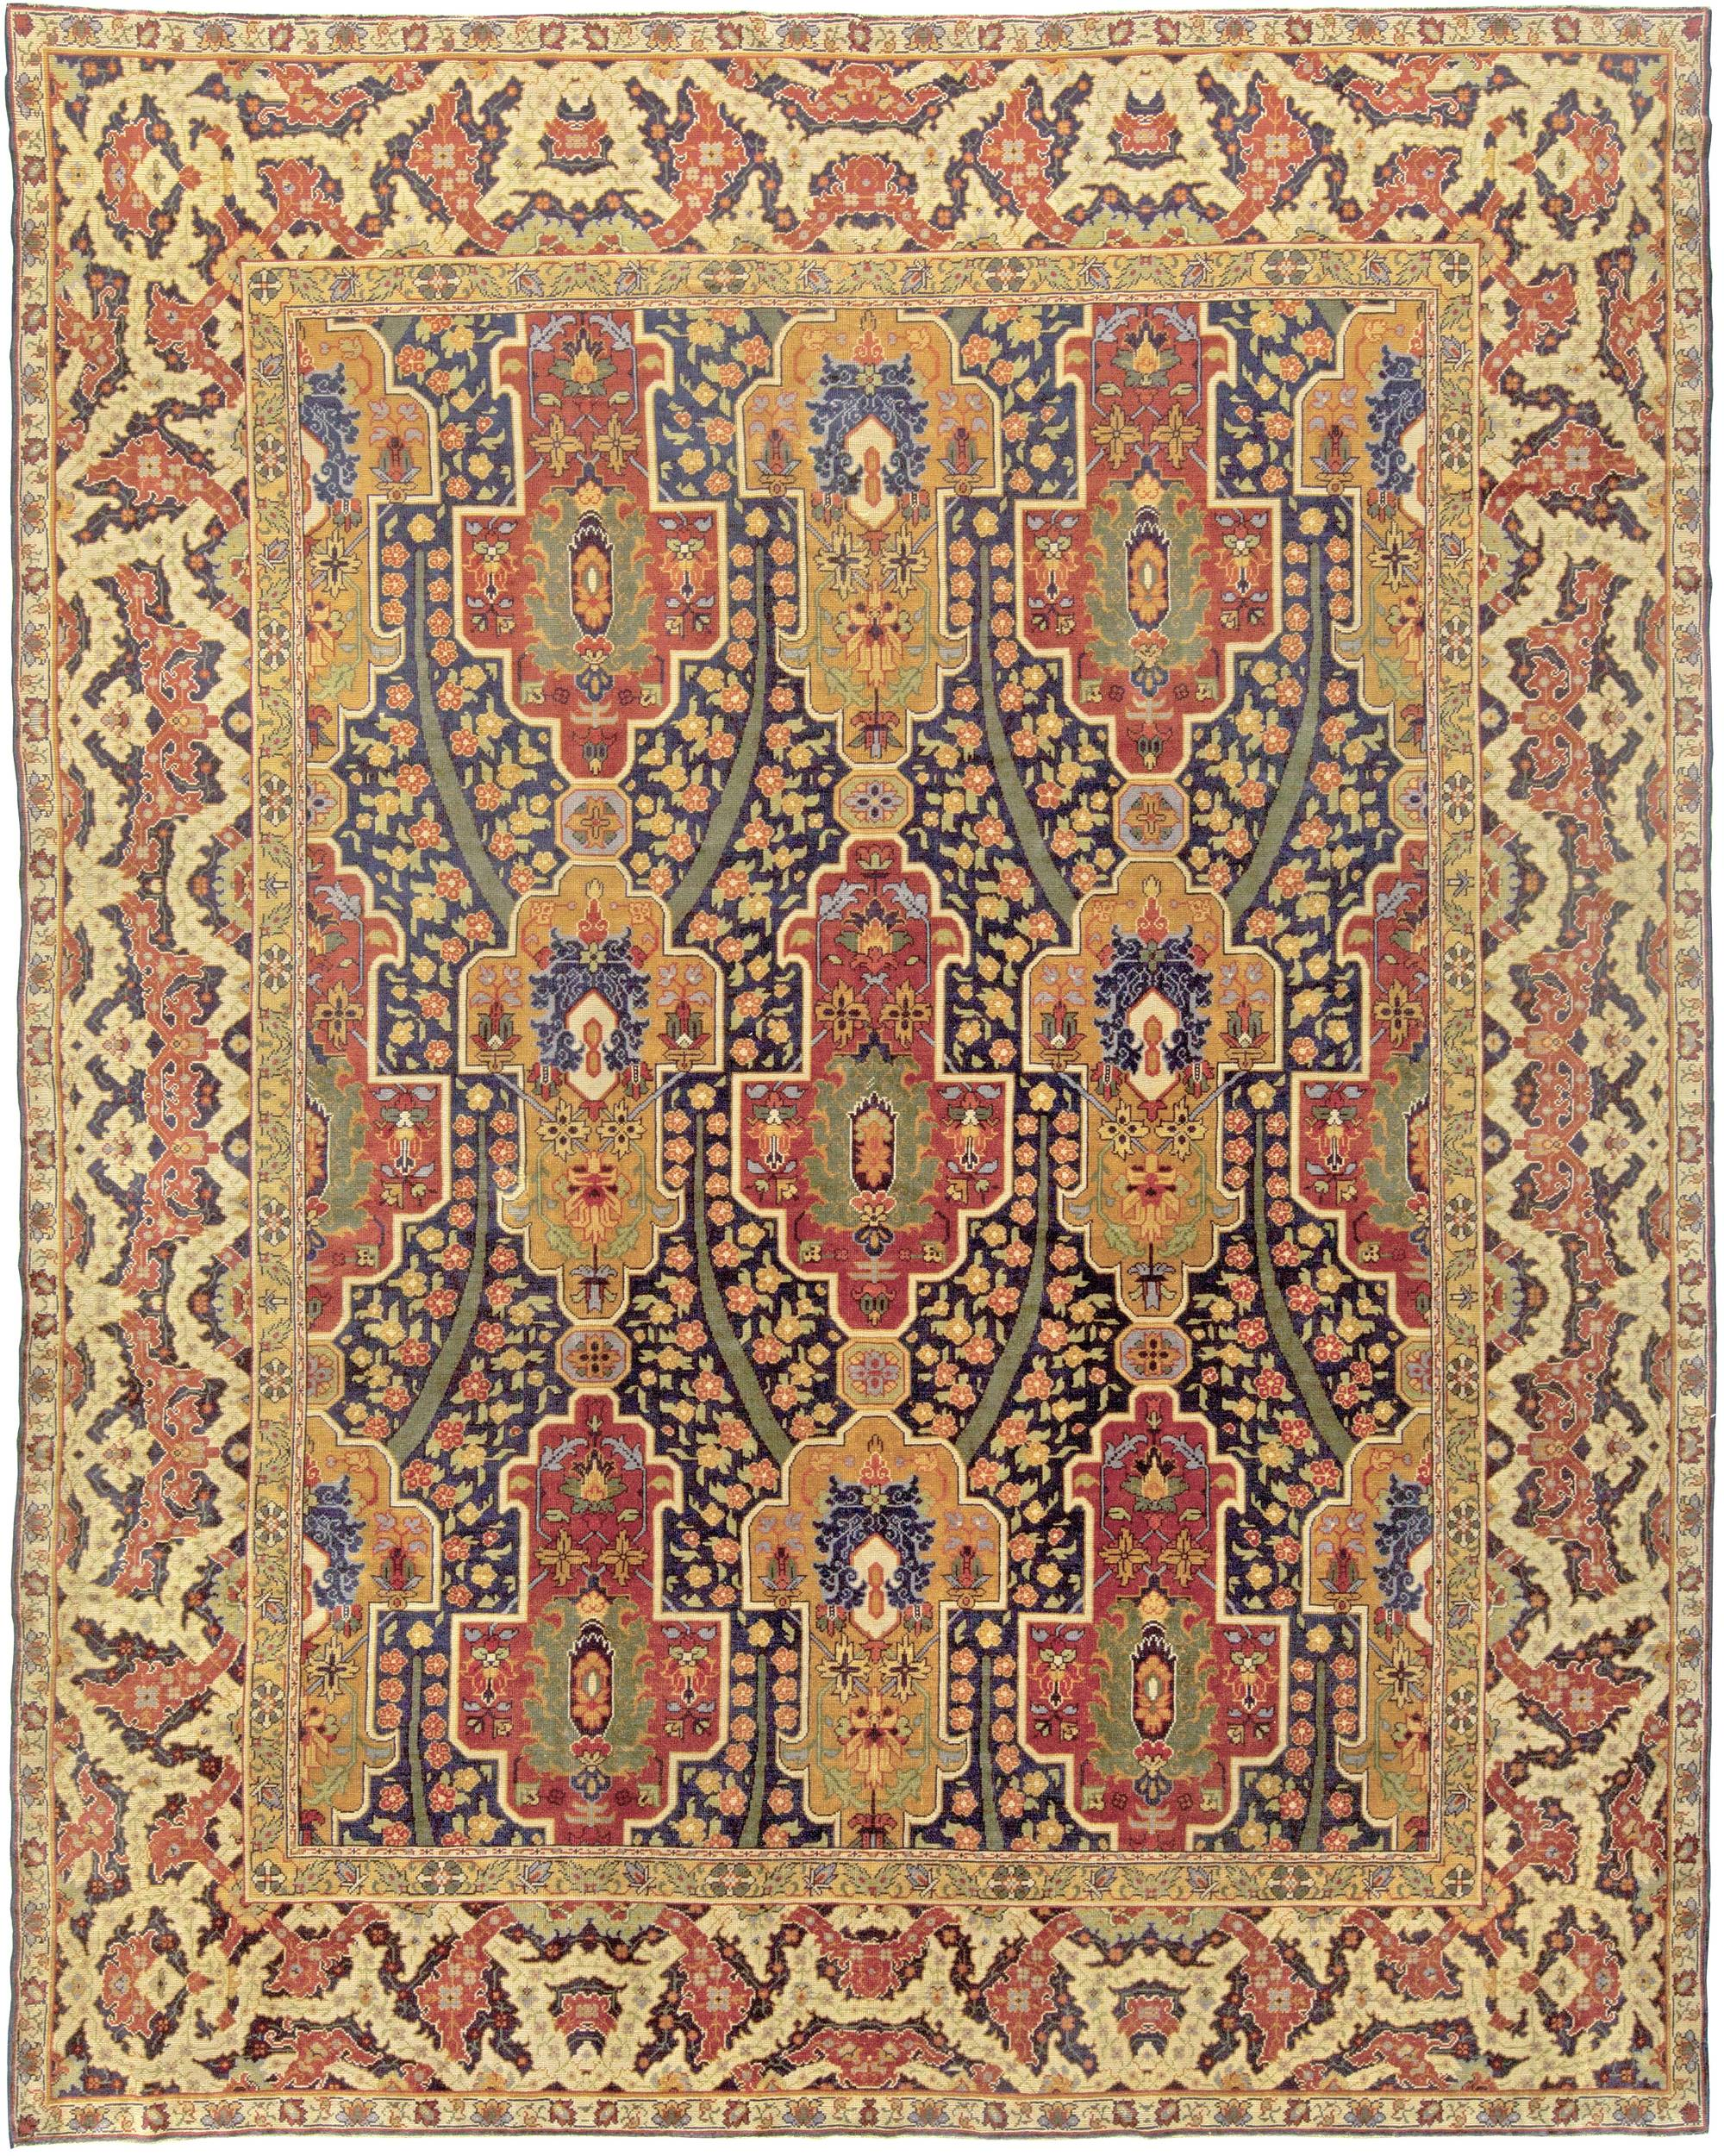 Turkish Hereke Antique Rug Bb5914 By Doris Leslie Blau